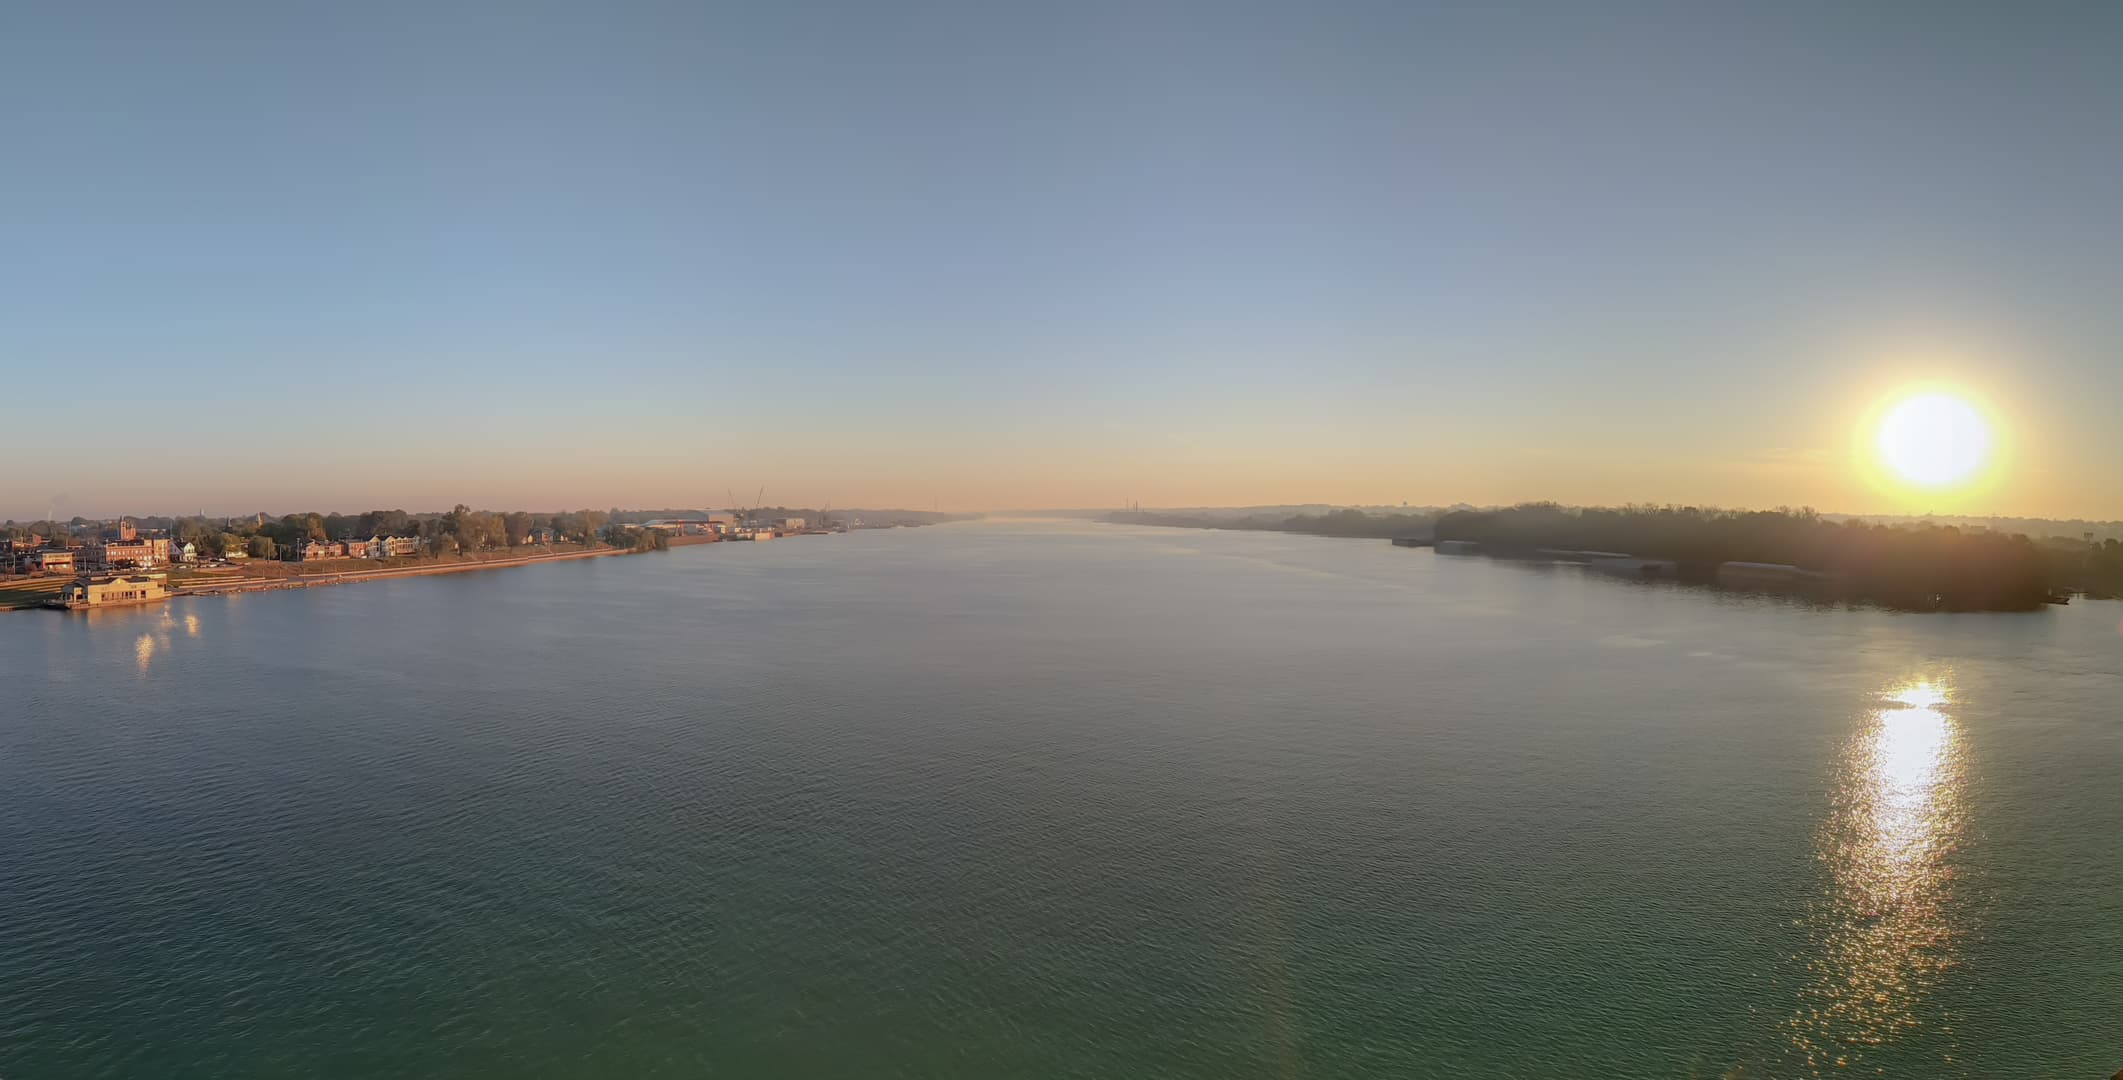 A panorama taken near the center of the Ohio River looking east, just after dawn. The left shore is Indiana, while the right shore is Kentucky.